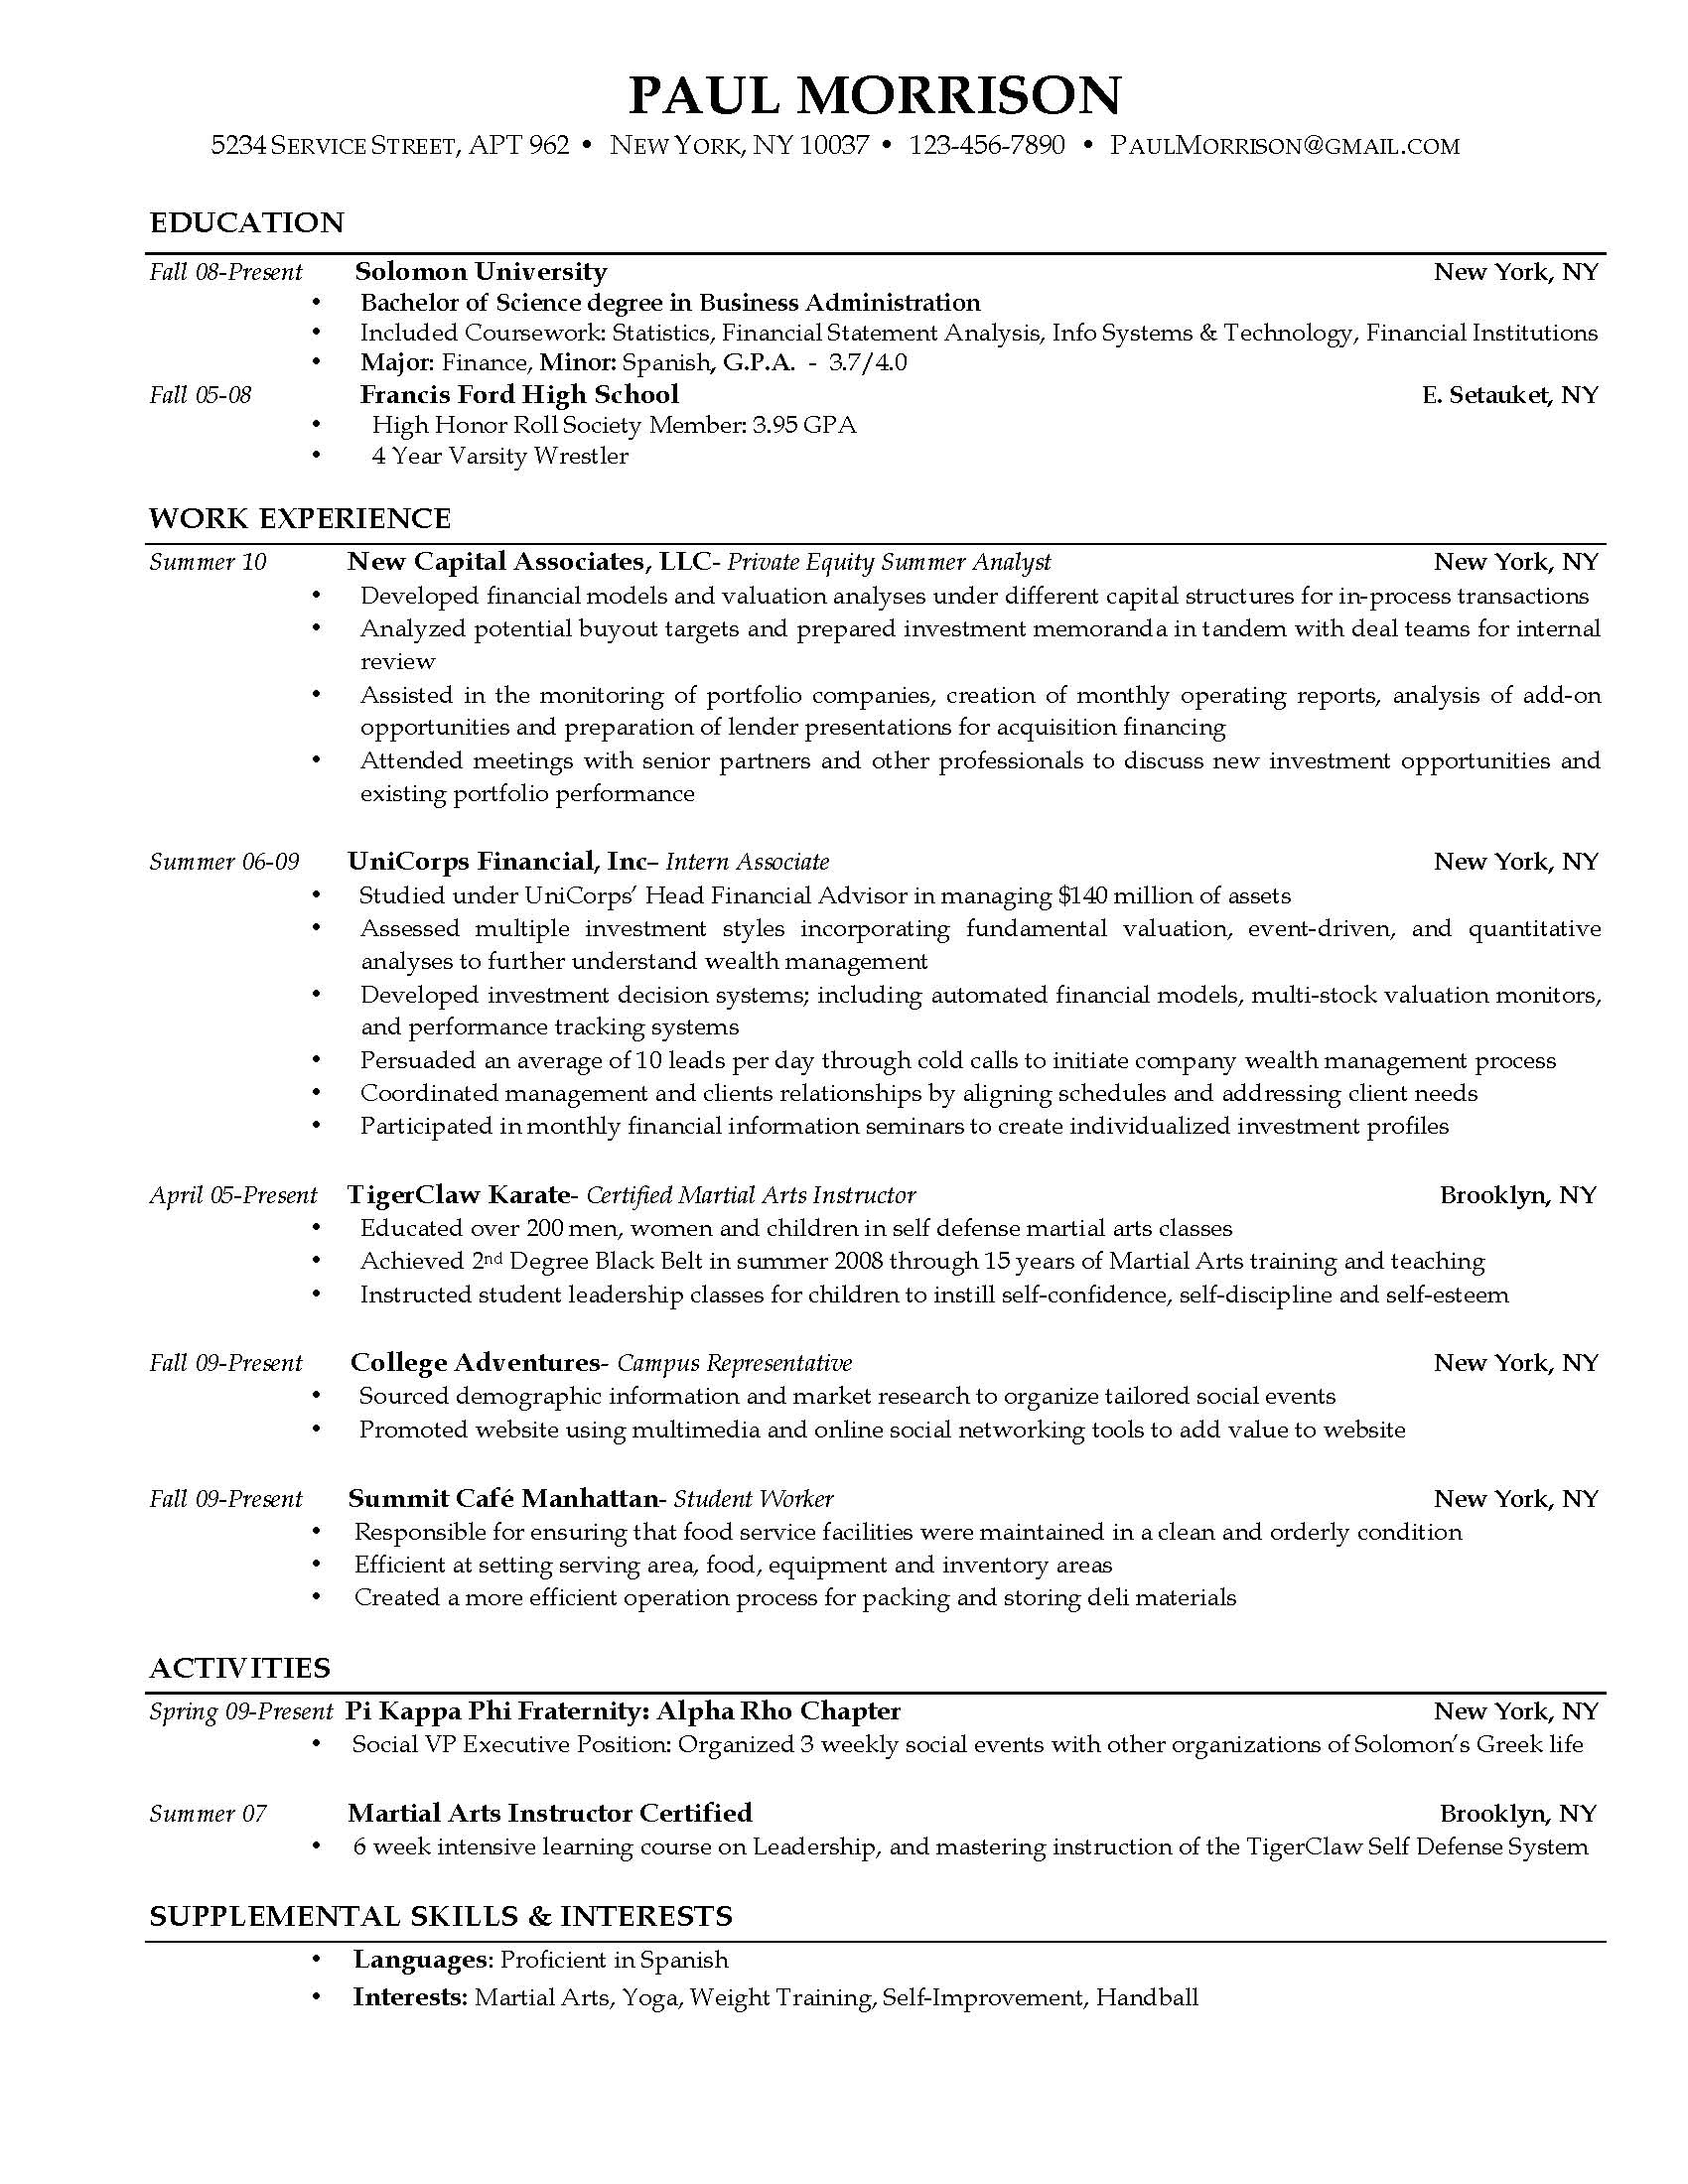 resume skills organized professional resume cover letter sample resume skills organized 5 skills to list on your resume flexjobs lesson 3 microsoft word 101